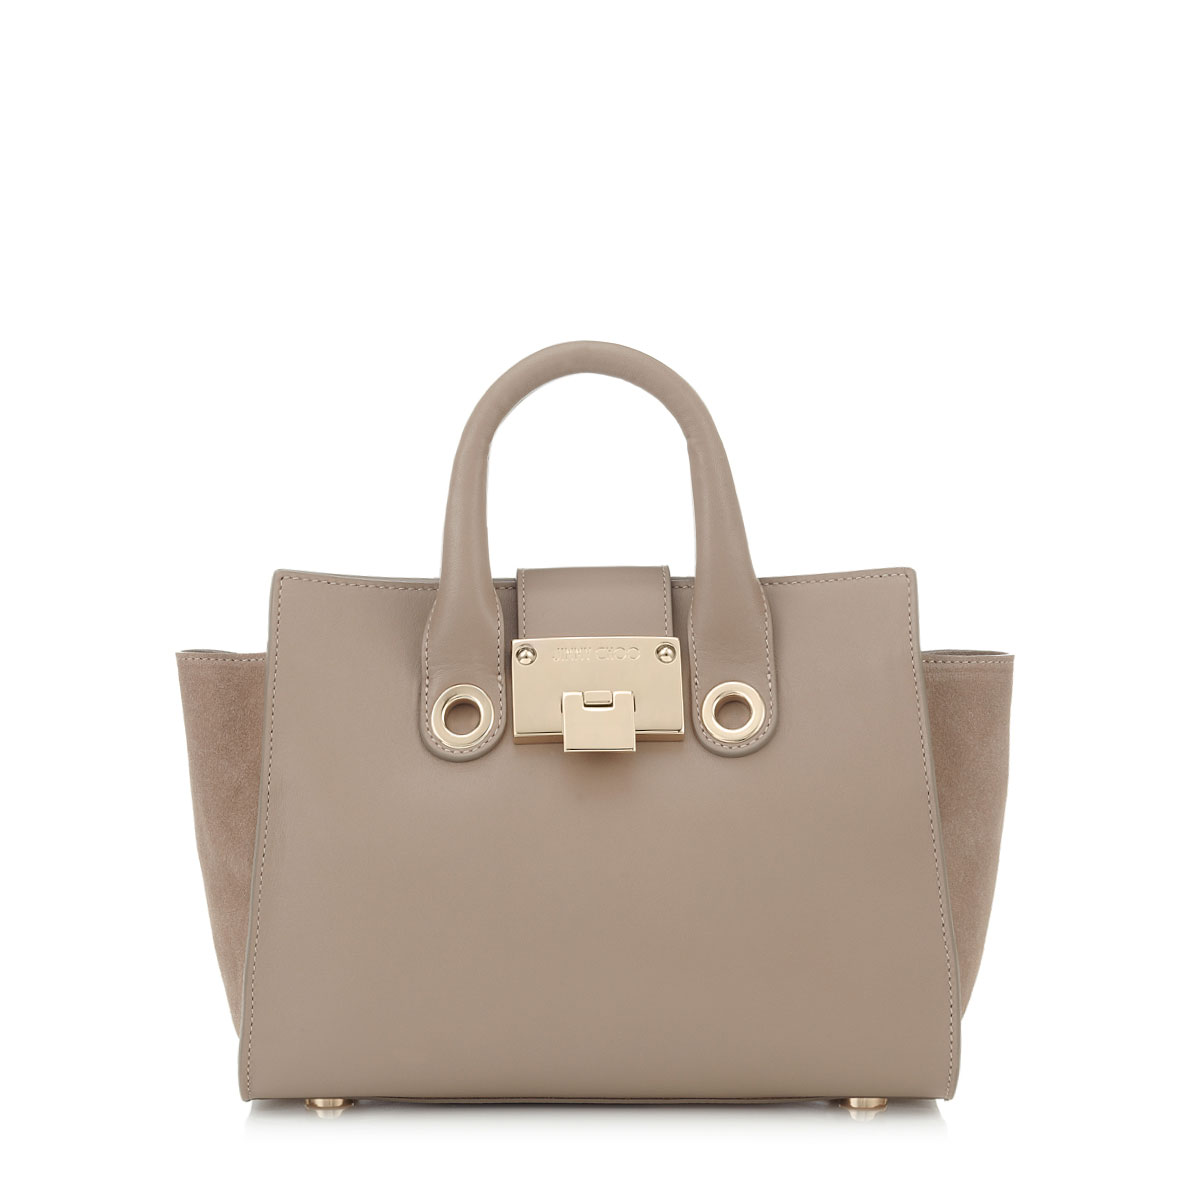 RILEY S Musk Smooth Leather and Suede Small Tote Bag